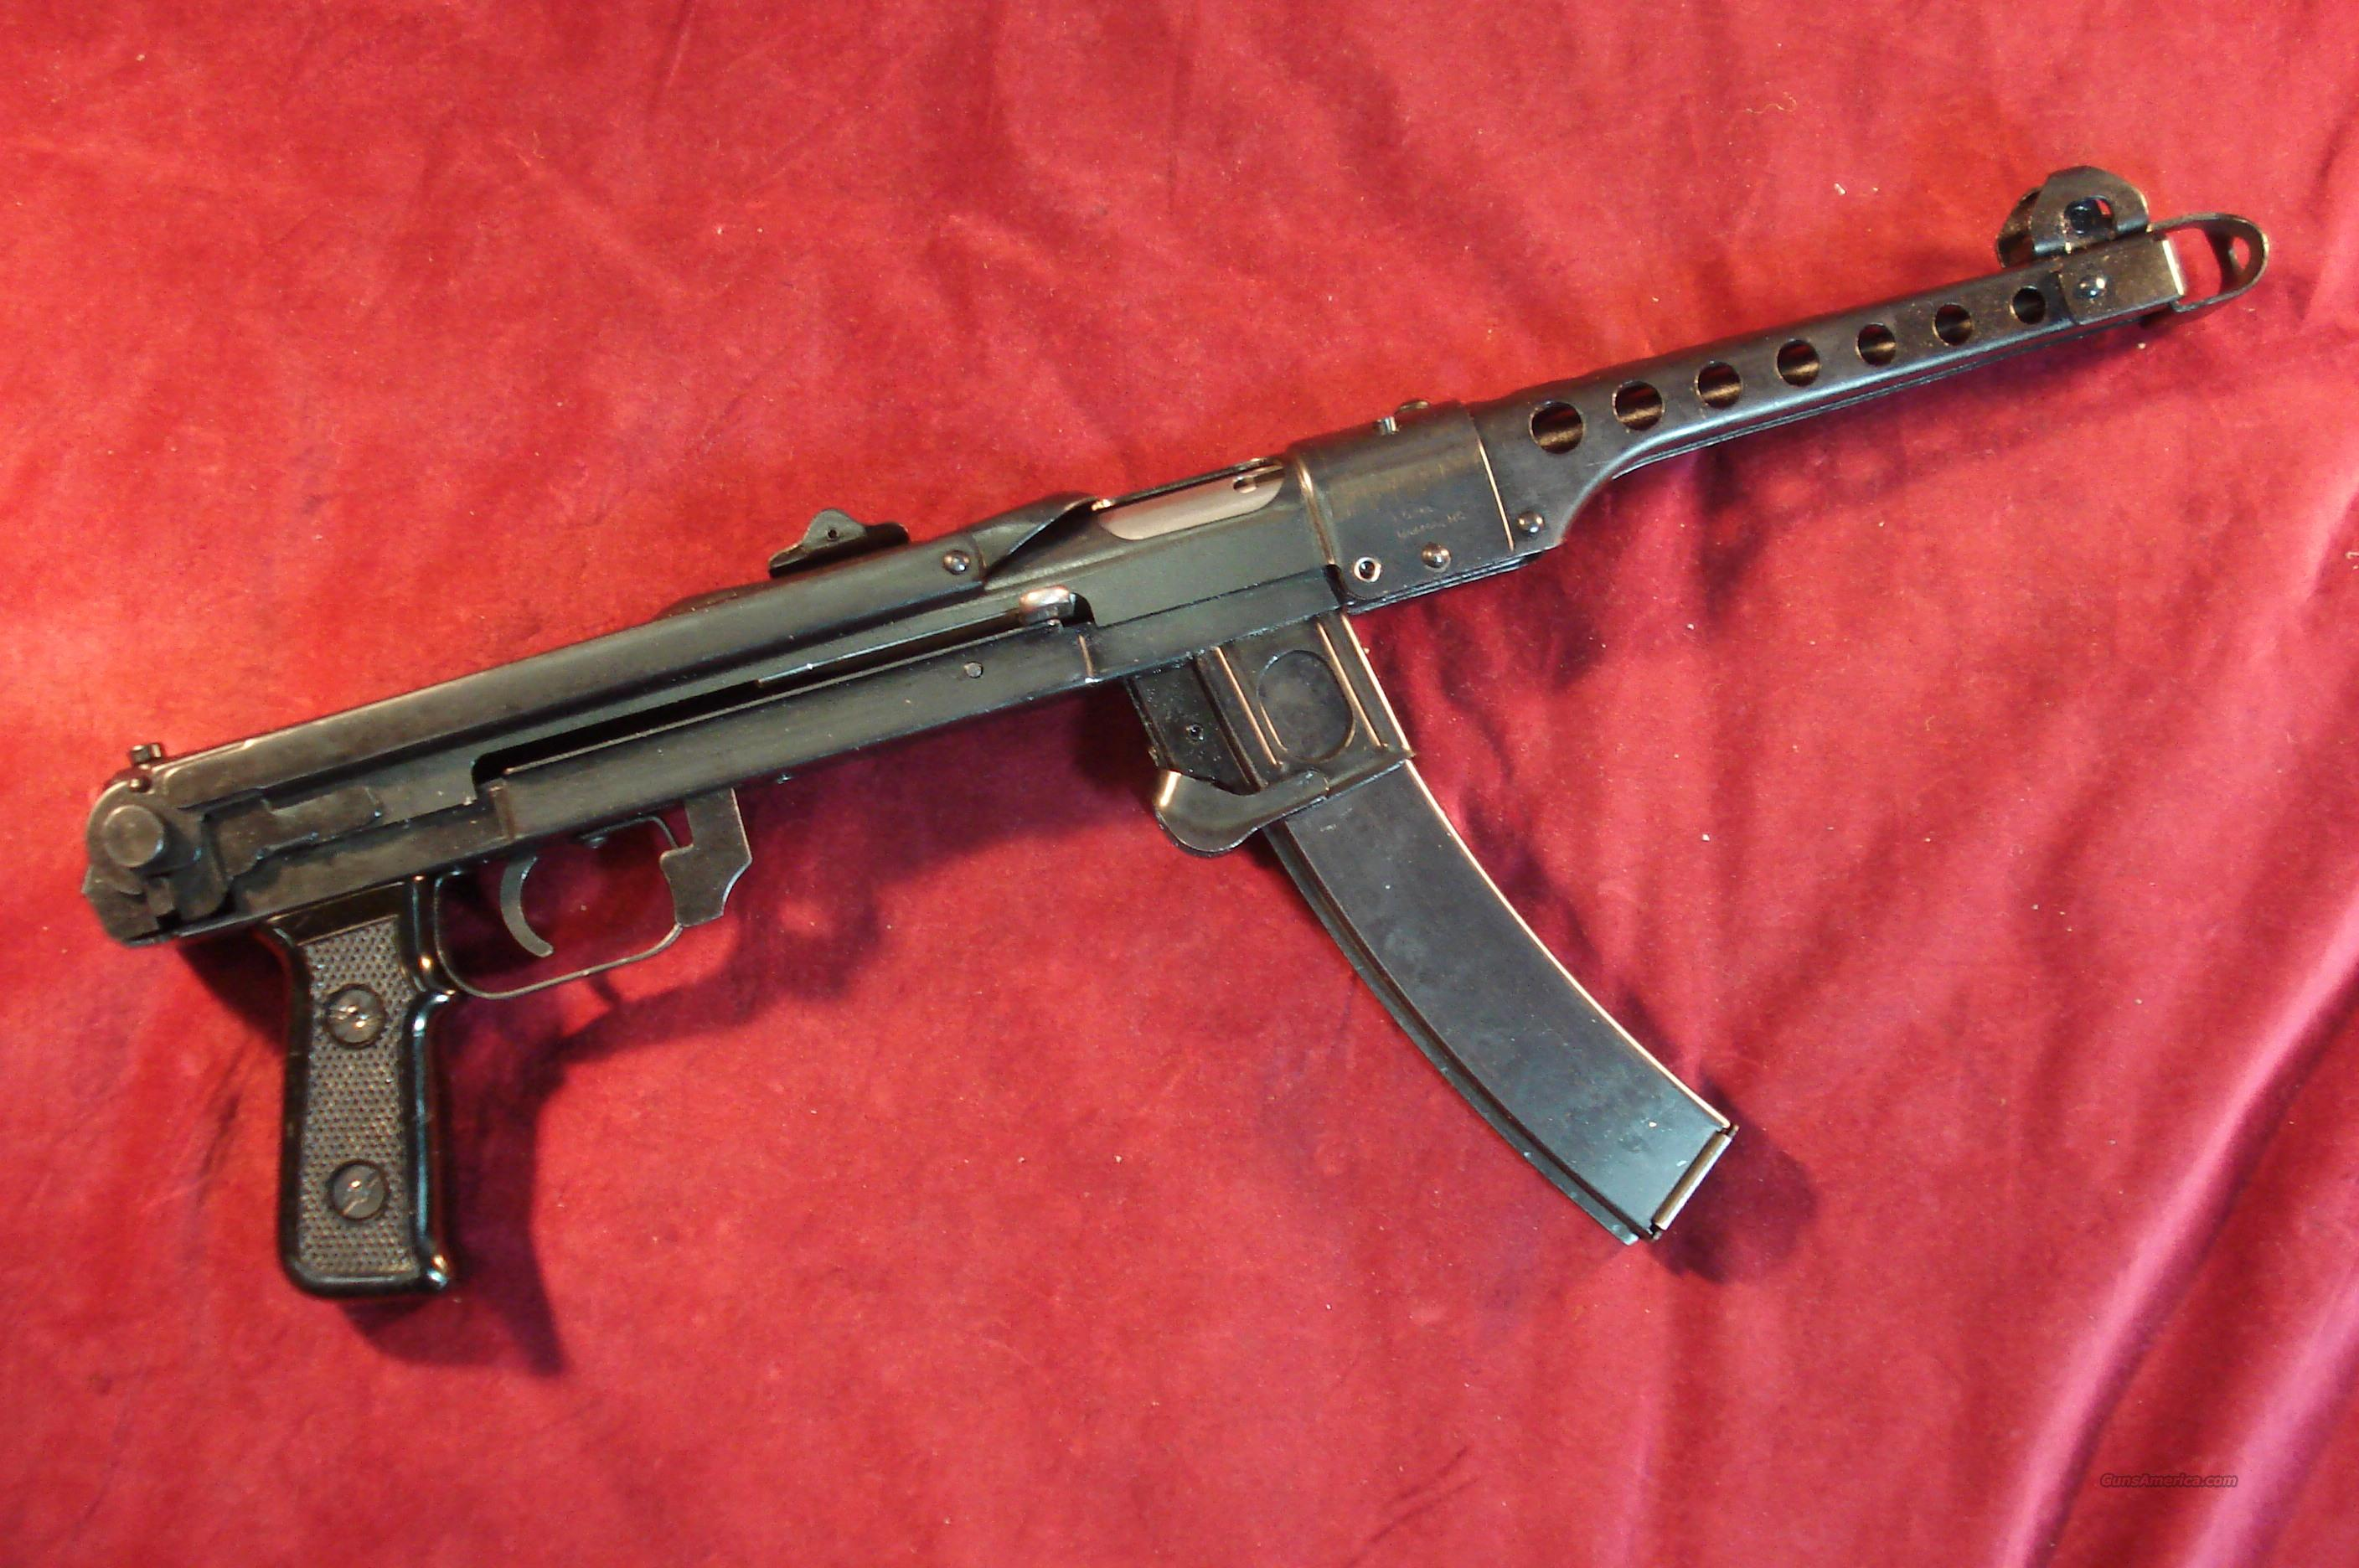 I.O. INC POLISH PPS-43C 7.62X25 TOKAREV PISTOL PERMANENTLY FOLDED STOCK W/4 35 ROUND MAGS NEW  Guns > Pistols > Military Misc. Pistols Non-US